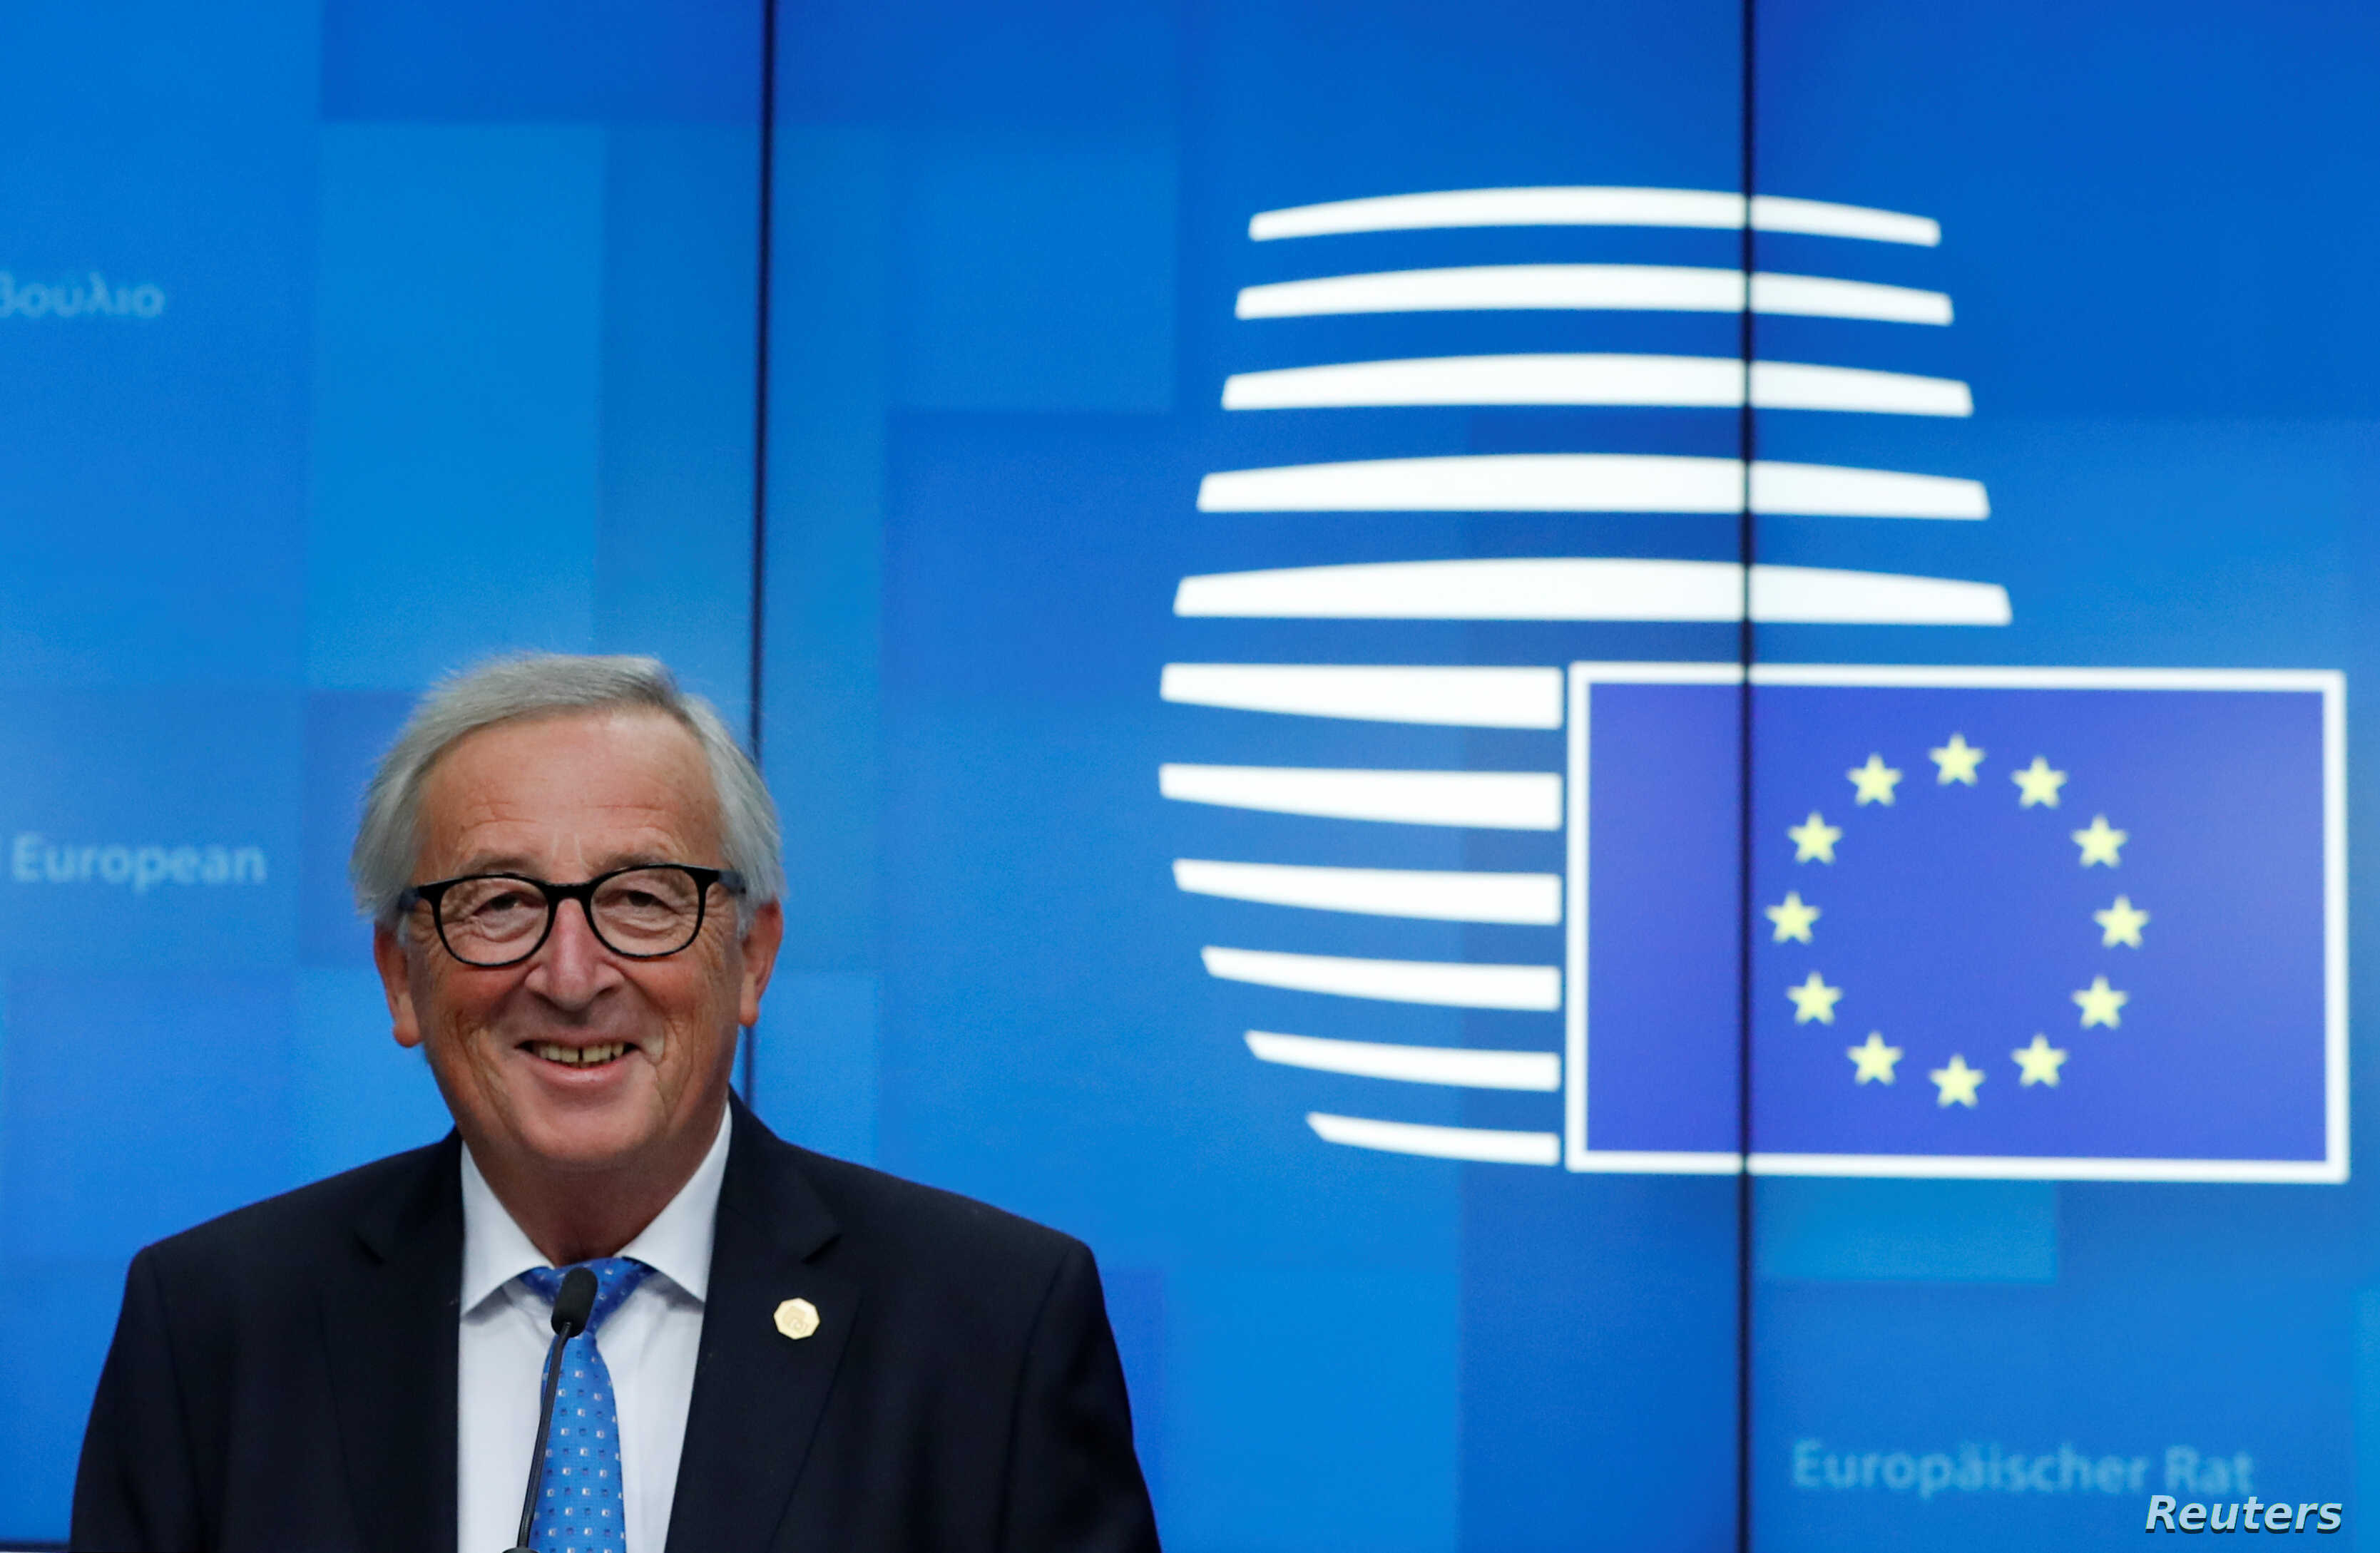 European Commission President Jean-Claude Juncker holds a news conference at the European Union leaders summit in Brussels, Belgium Oct. 18, 2018.